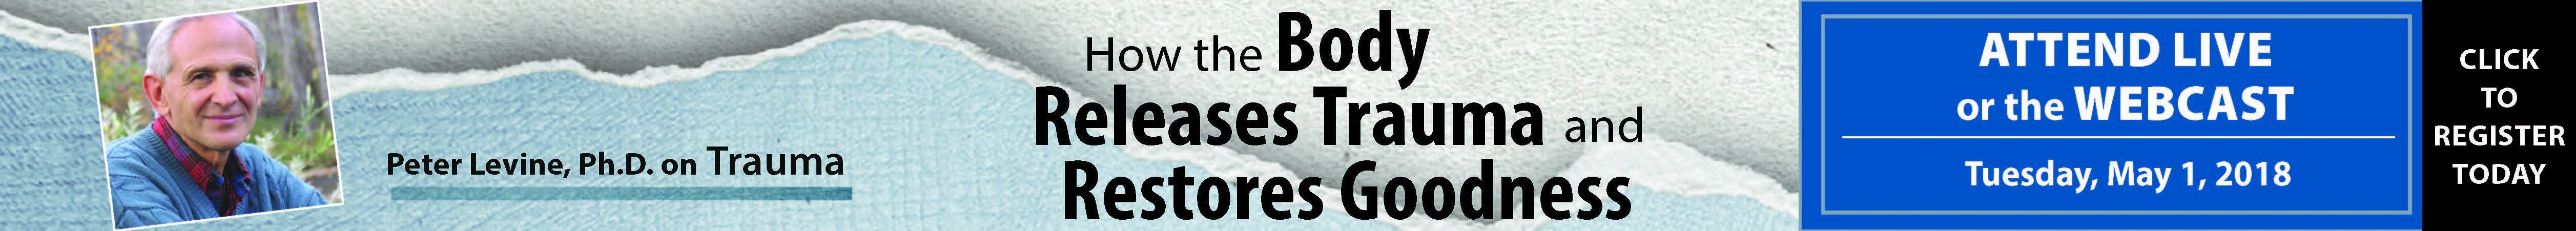 Peter Levine how the body releases trauma